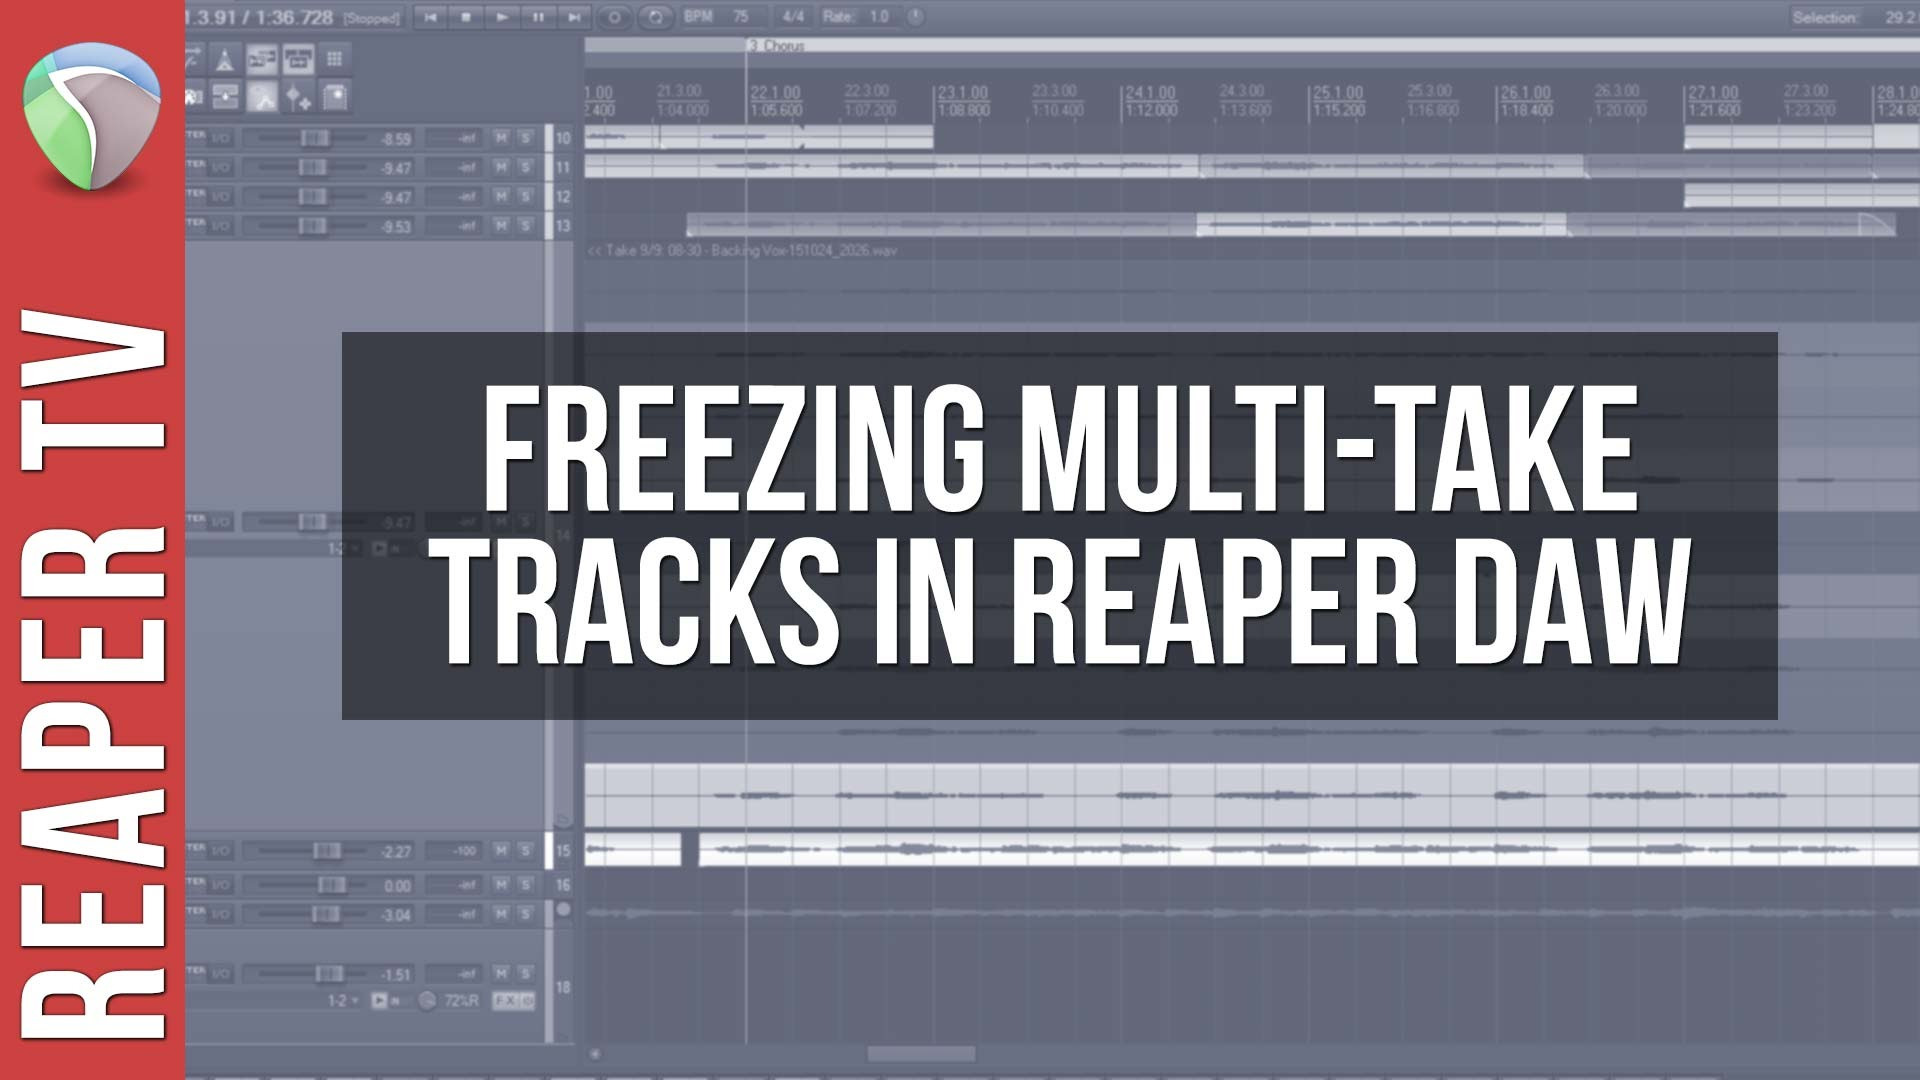 Freezing Multi-Take Tracks in Reaper 5 DAW